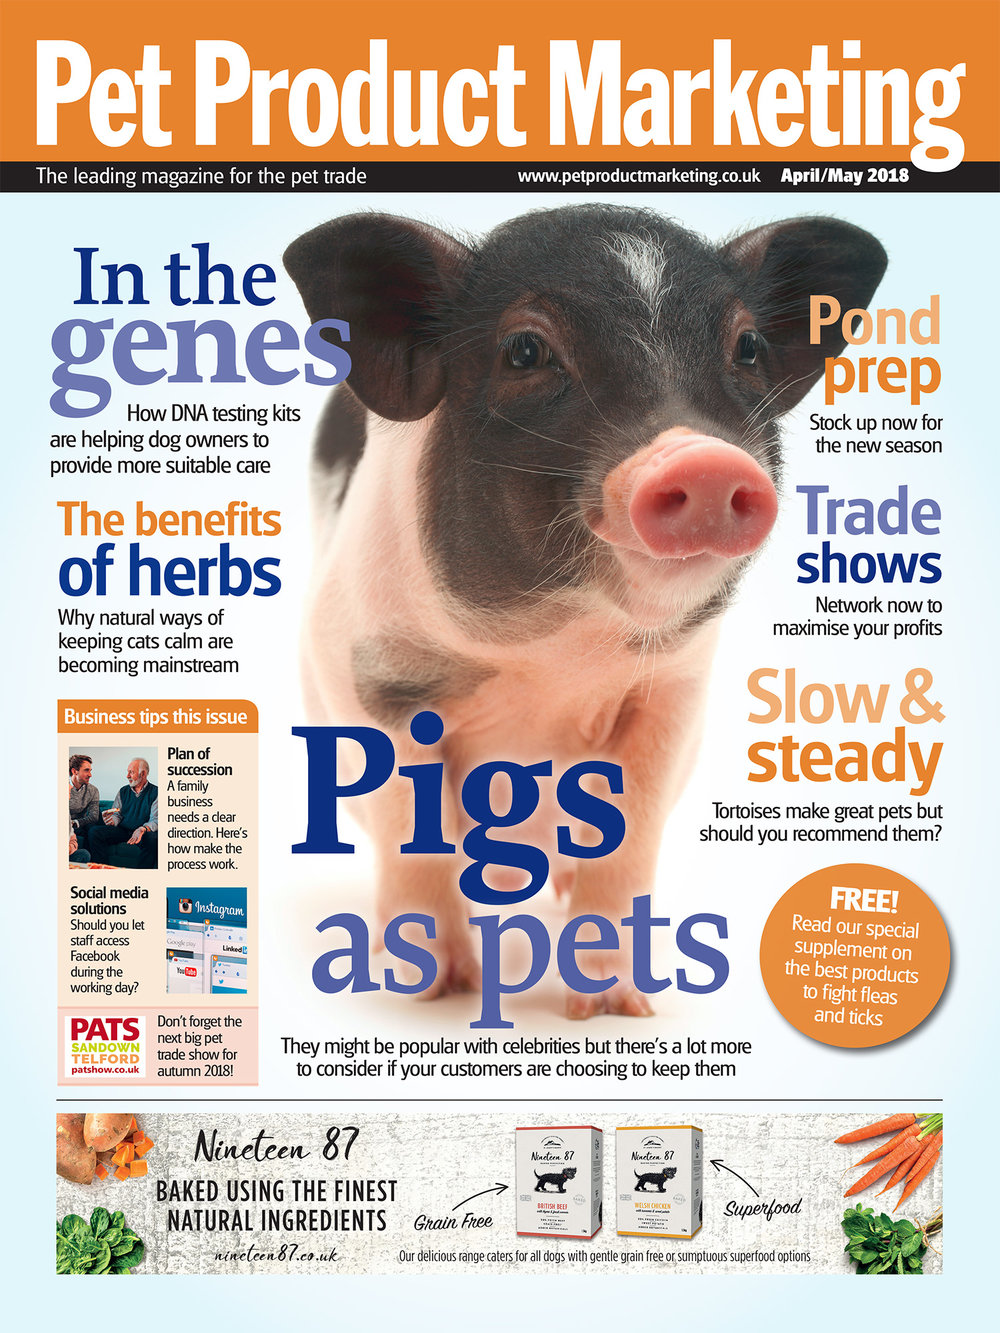 INSIDE THIS ISSUE:  Find out more about why pet pigs have become so popular. We get the low down on DNA testing for dogs. Tips on pond prep for the summer months.